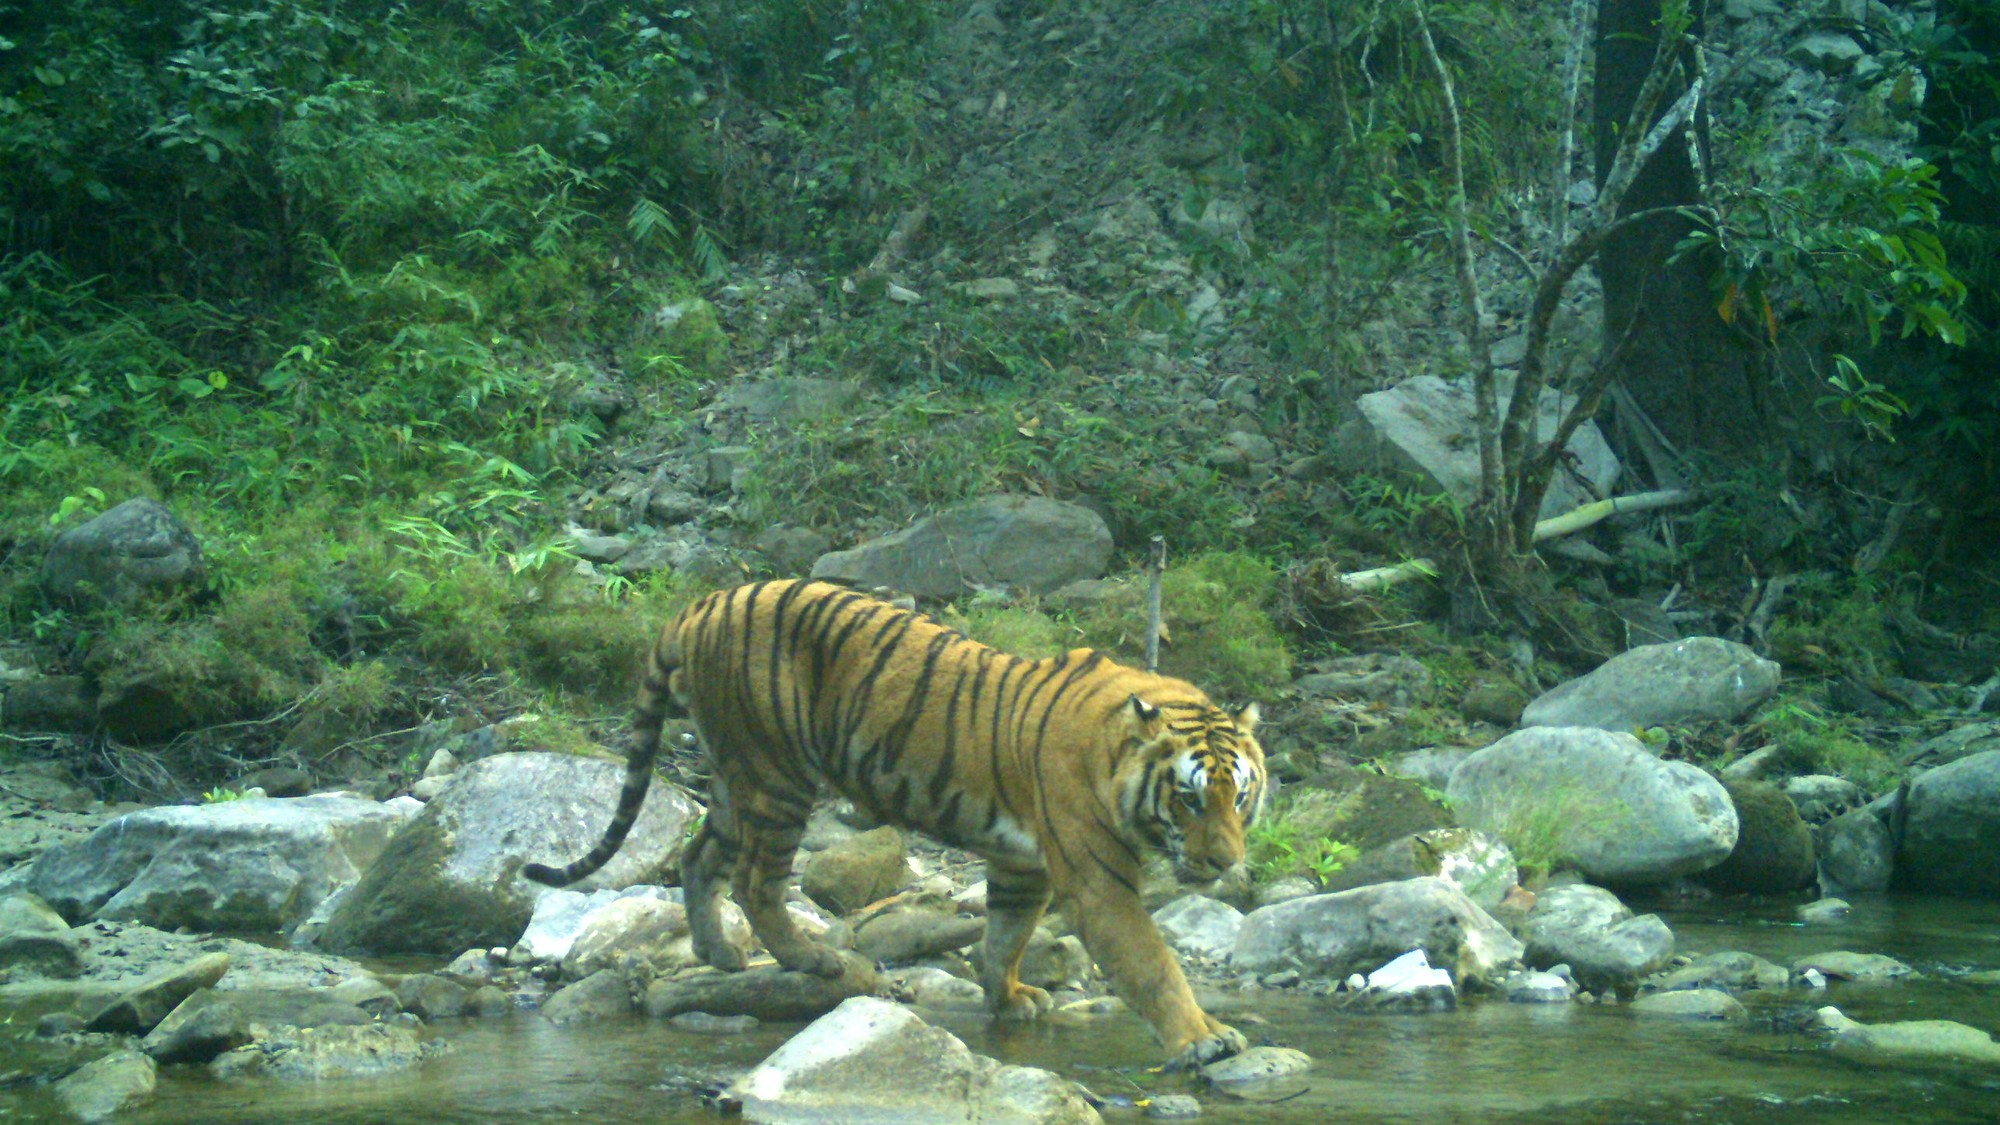 The Tiger Population in Nepal Has Nearly Doubled Since 2009